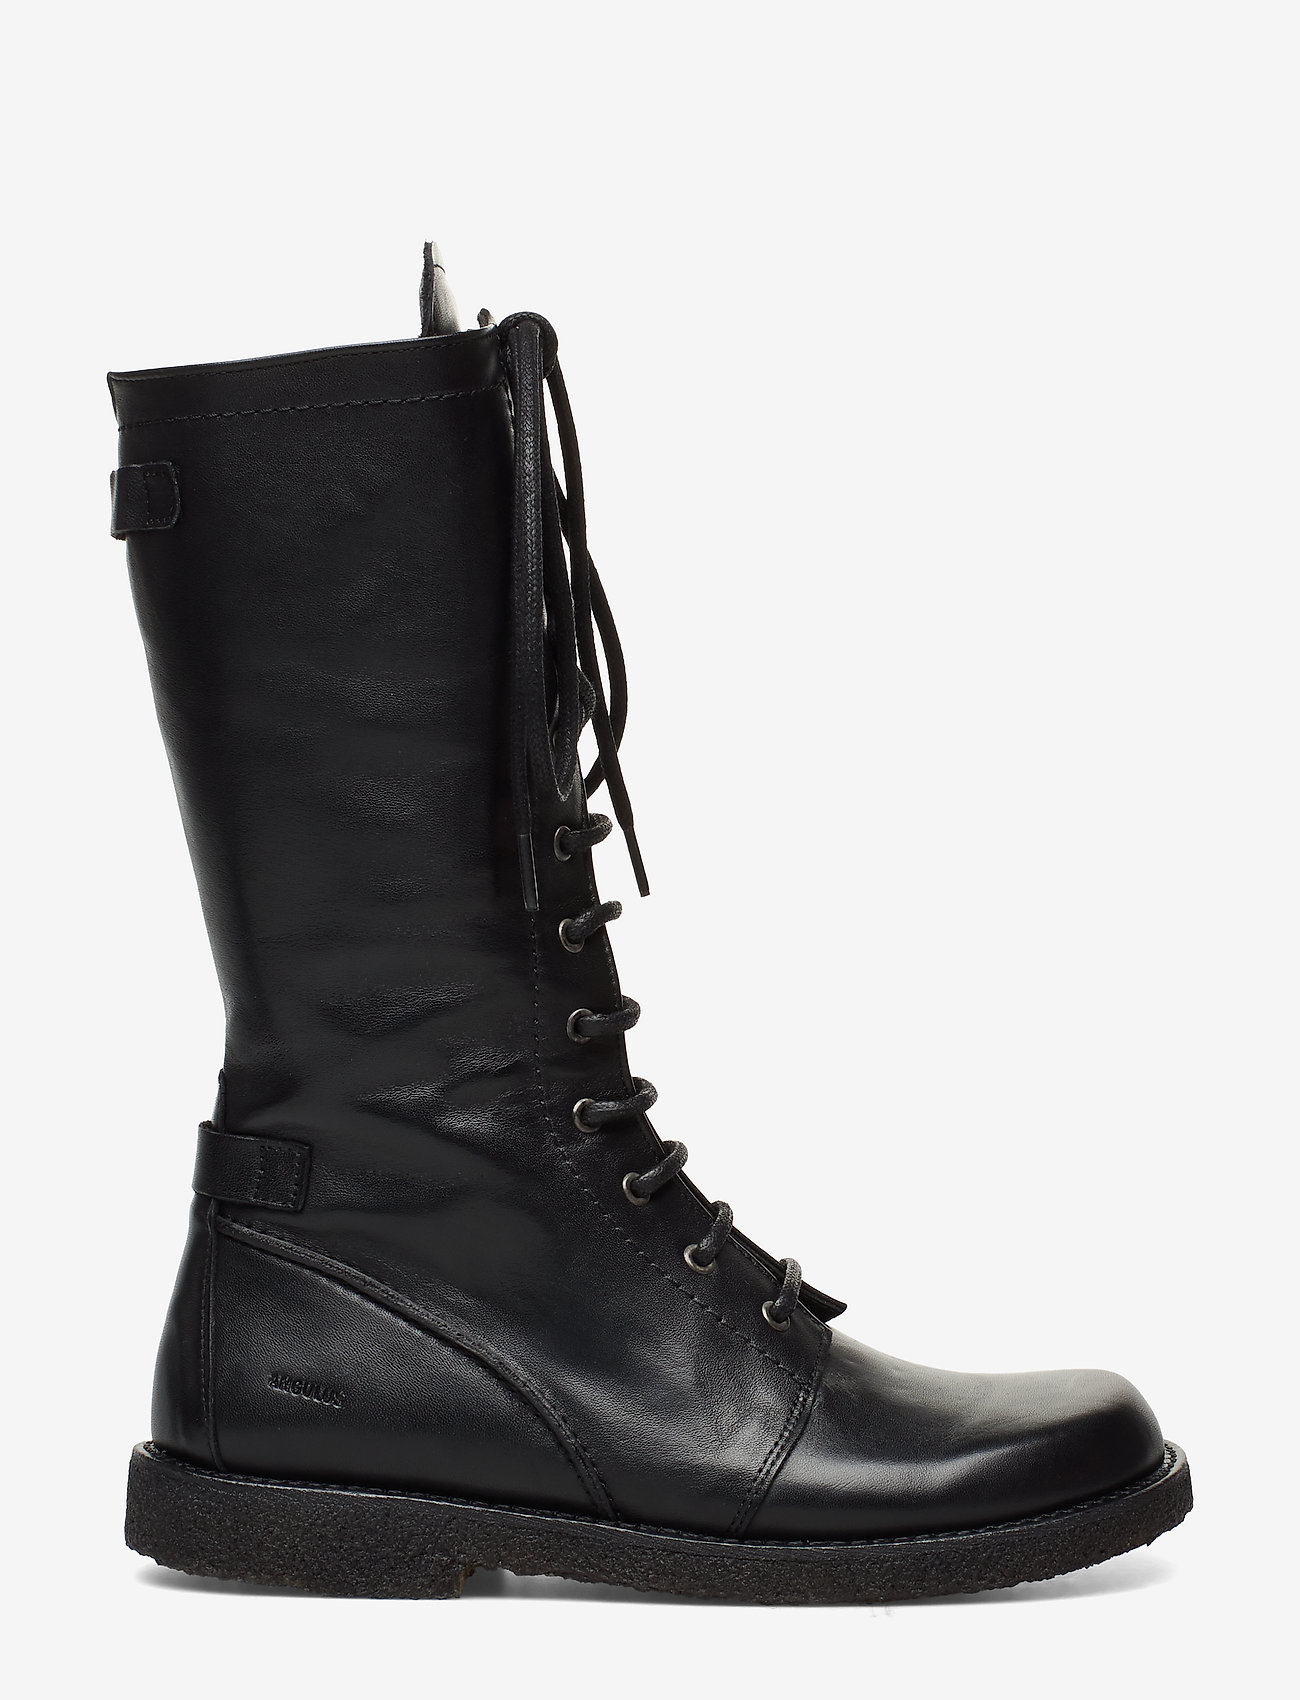 ANGULUS - Long boot with laces. - lange stiefel - 1604 black - 1